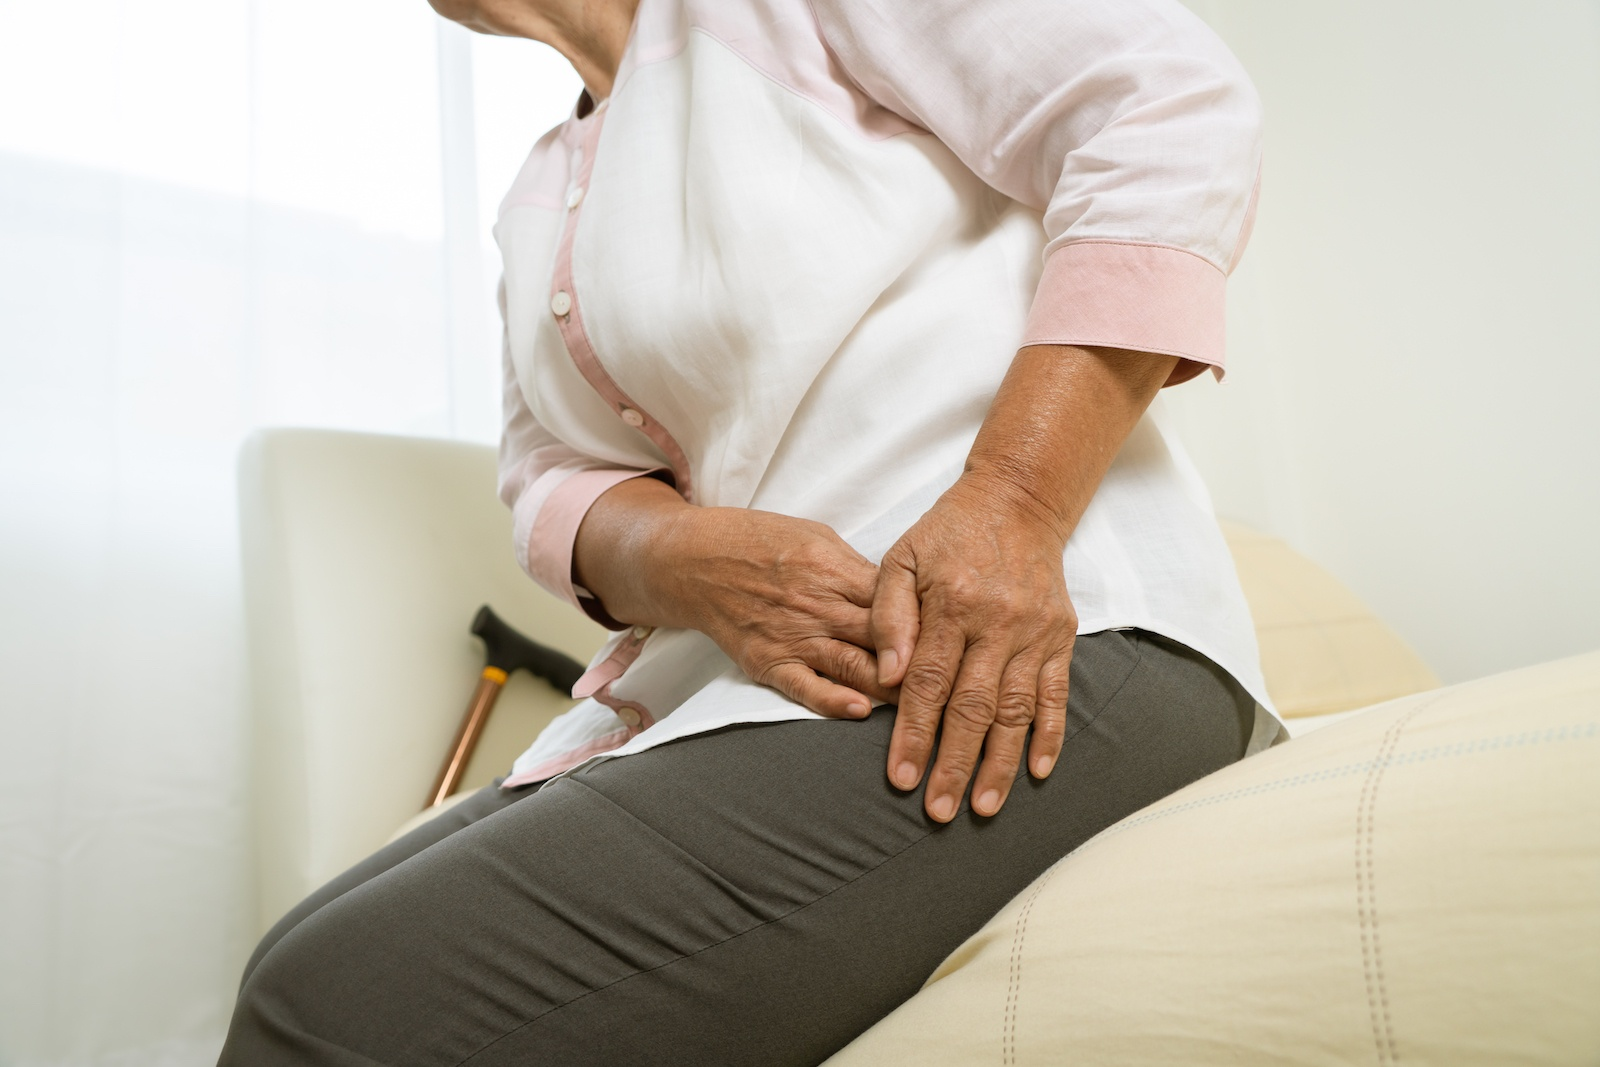 An older woman showing a sign of hip pain.